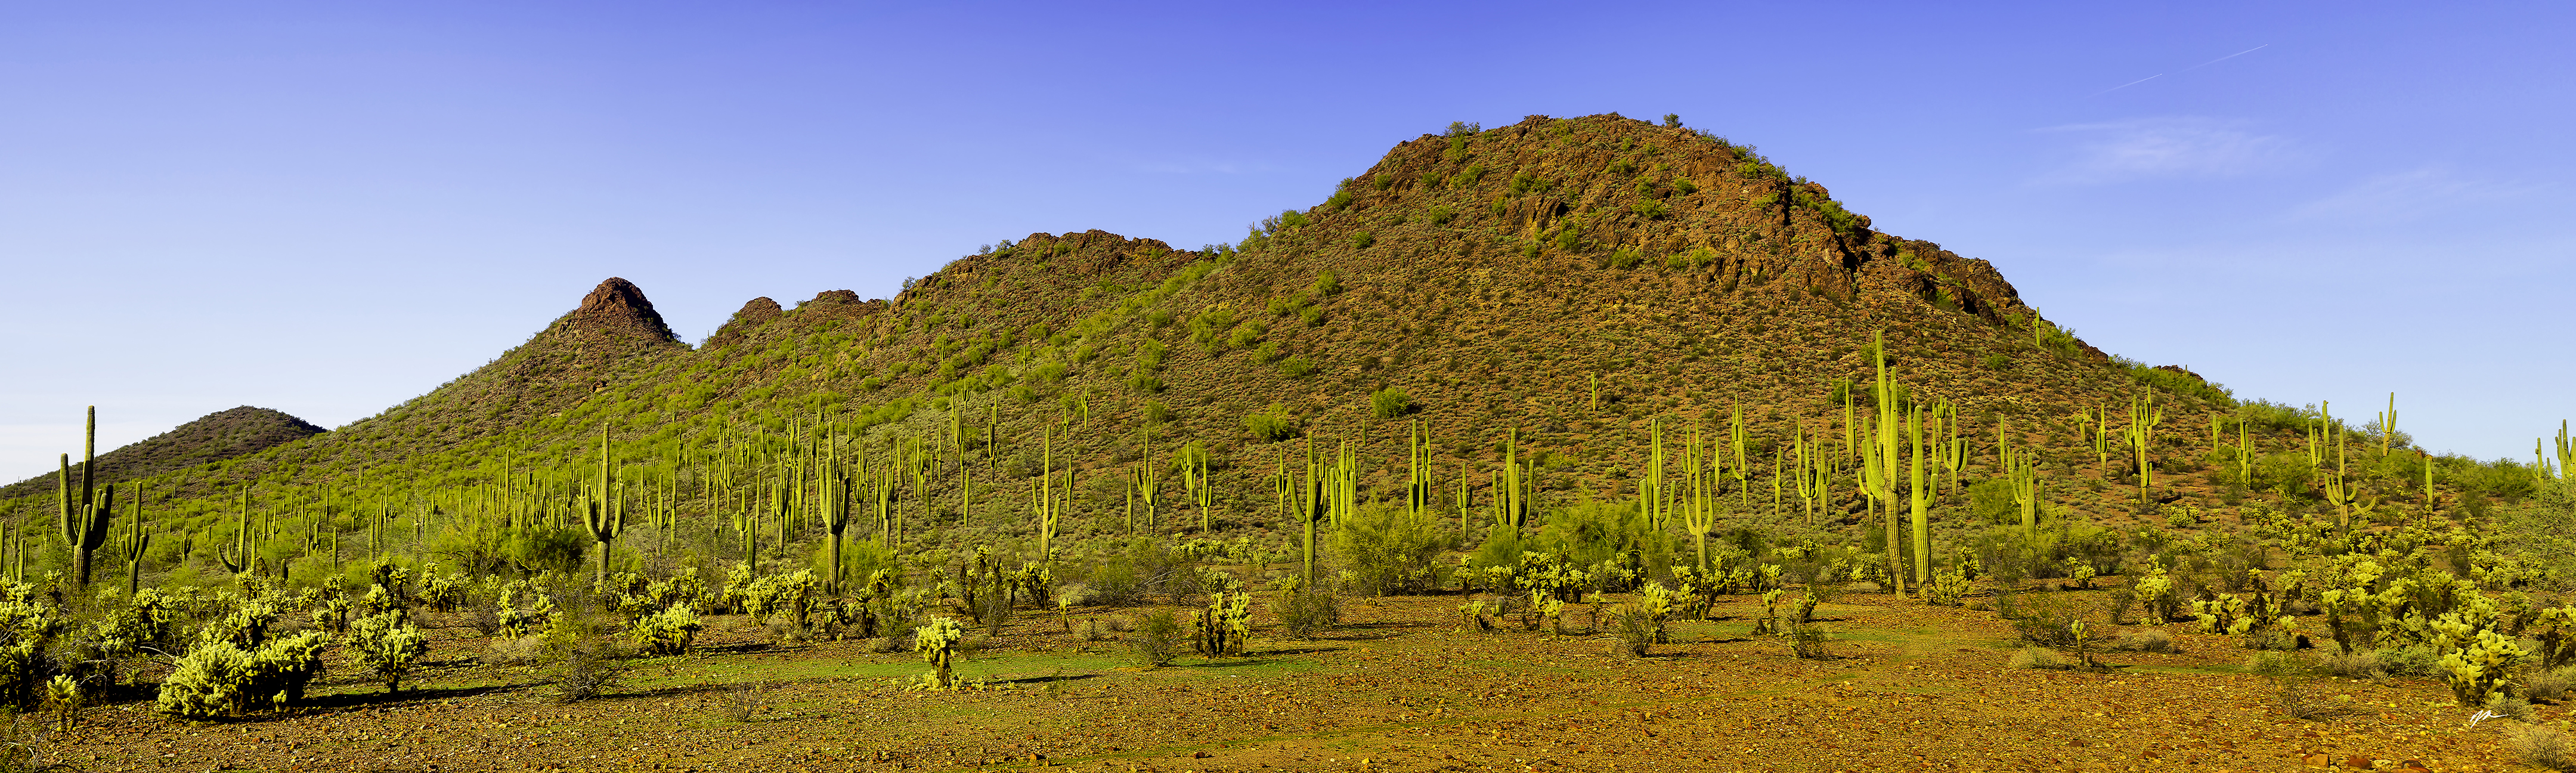 Sonoran Desert Panoramic